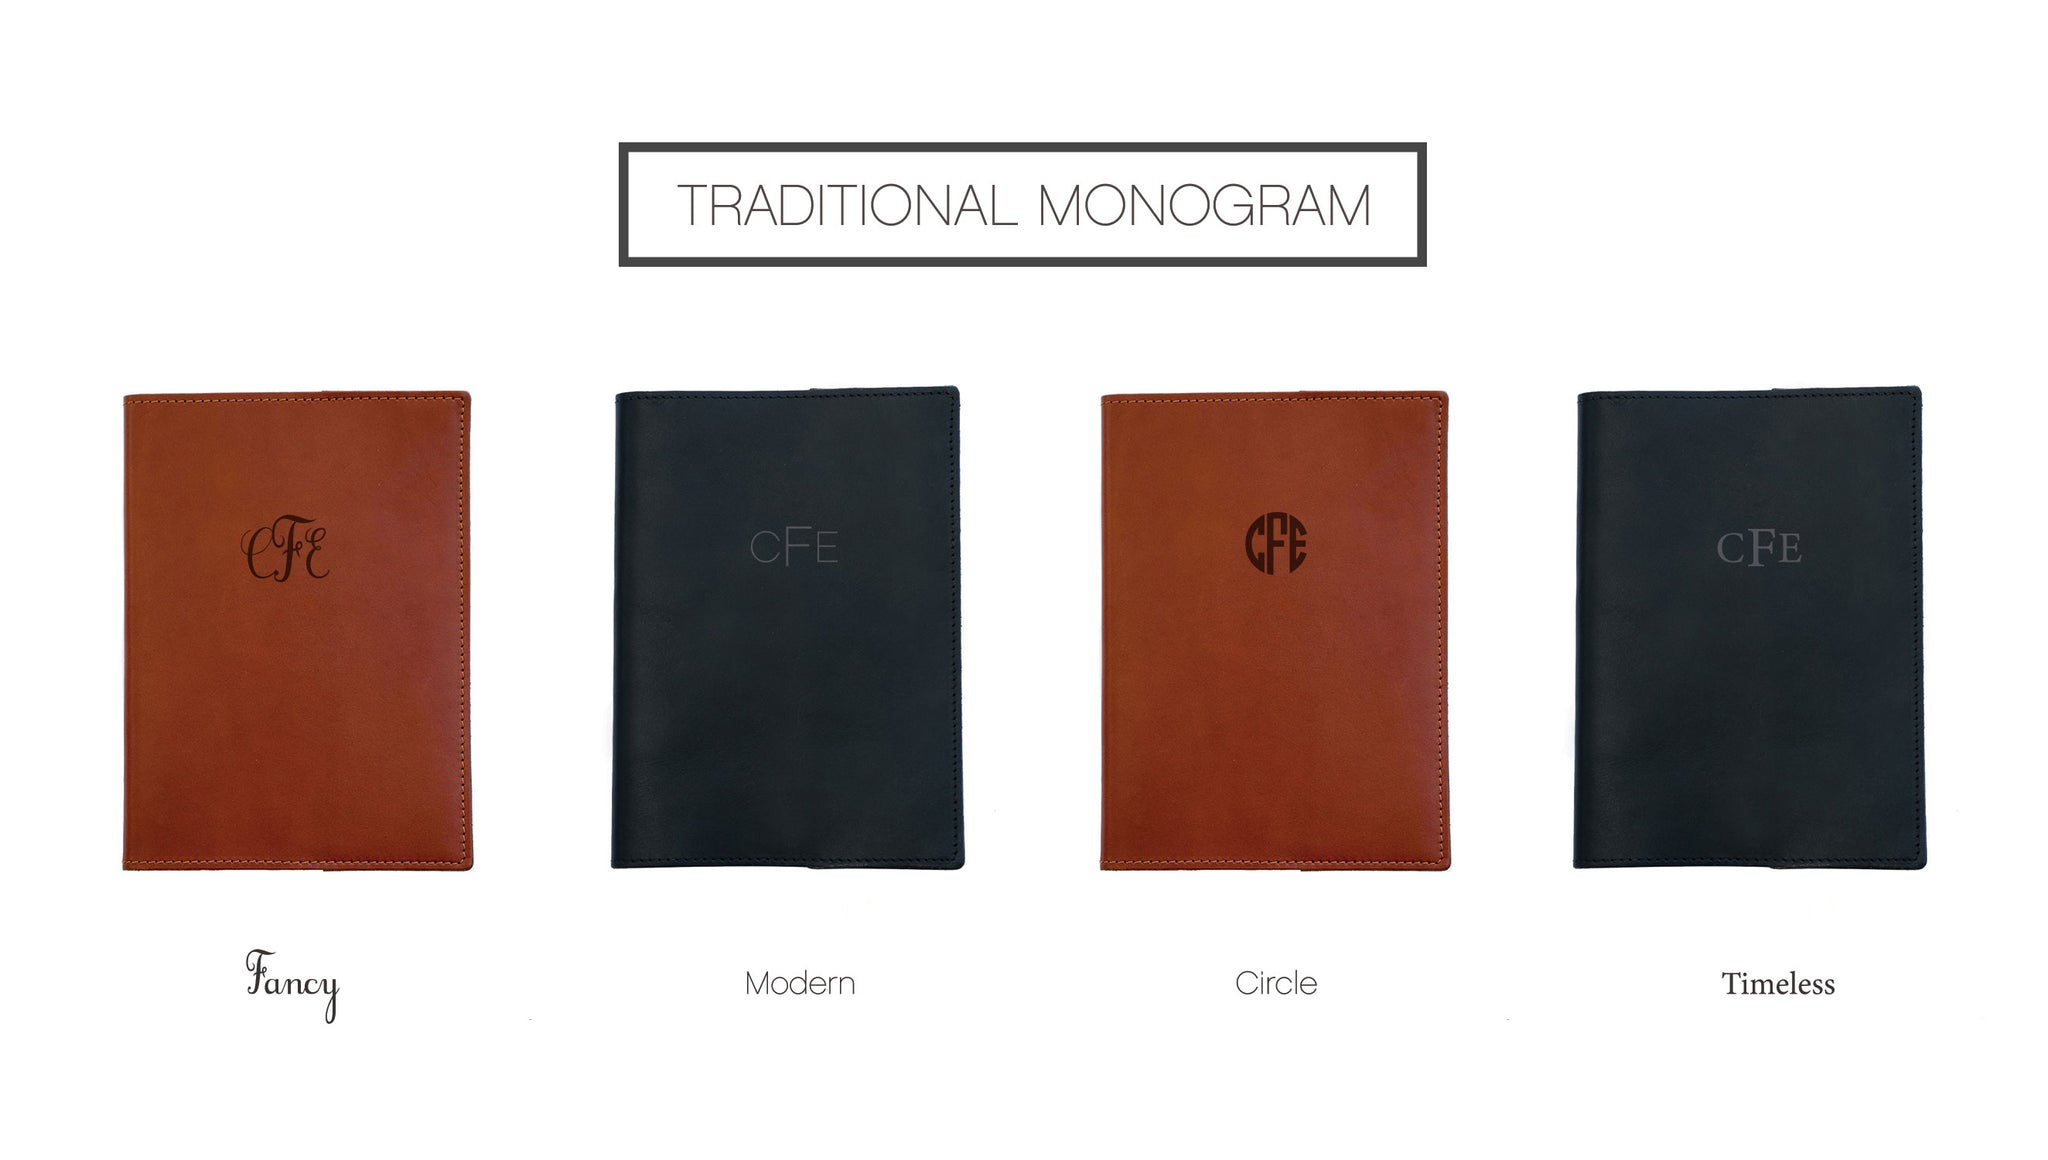 Journal Monogram Personalization Options